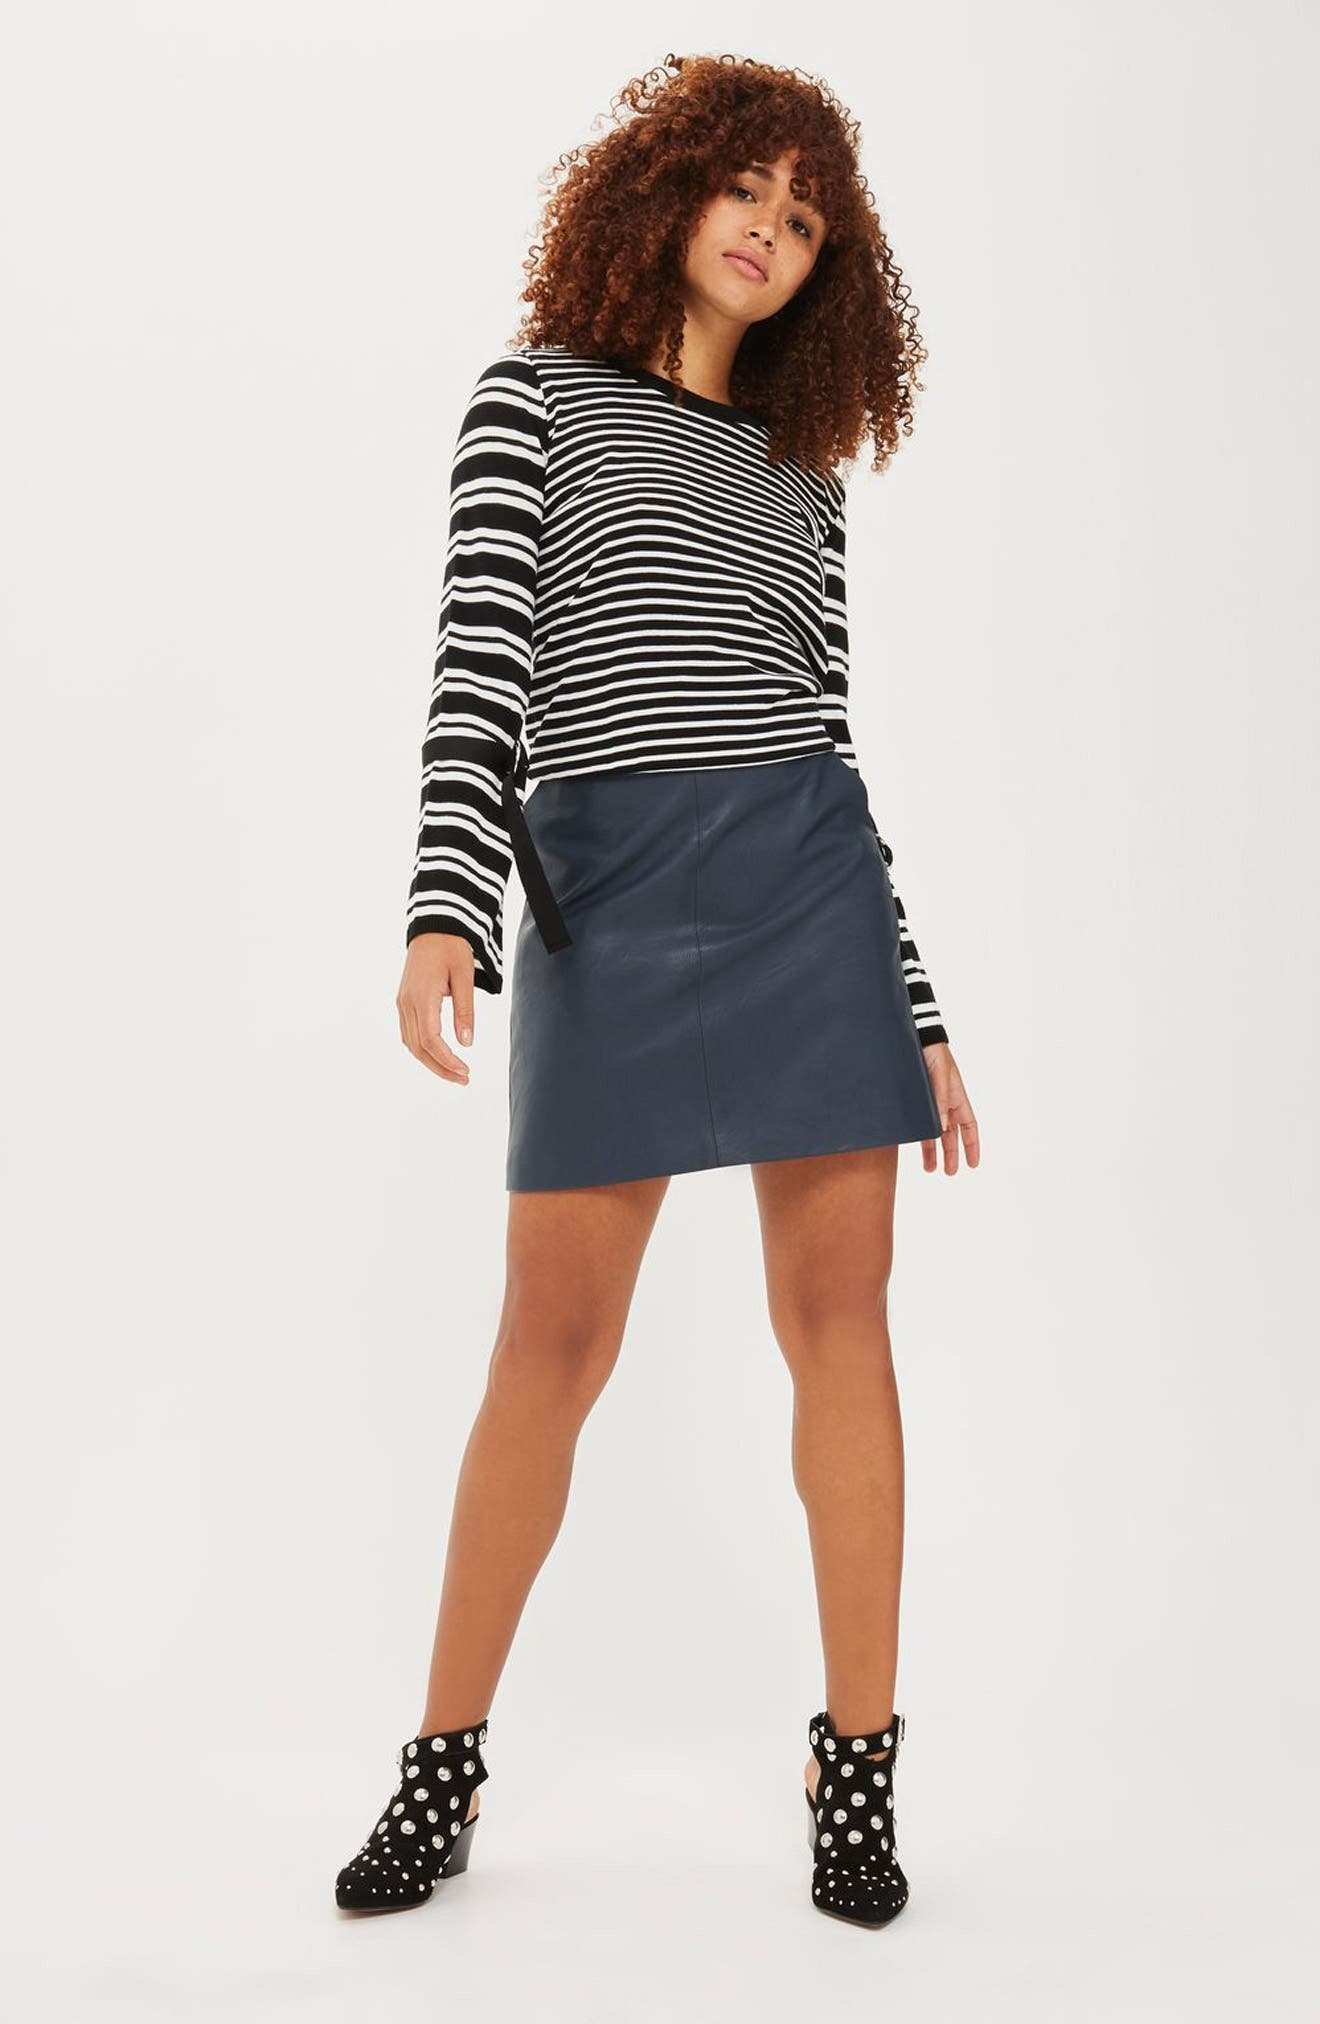 Topshop Sweater & Skirt Outfit with Accessories